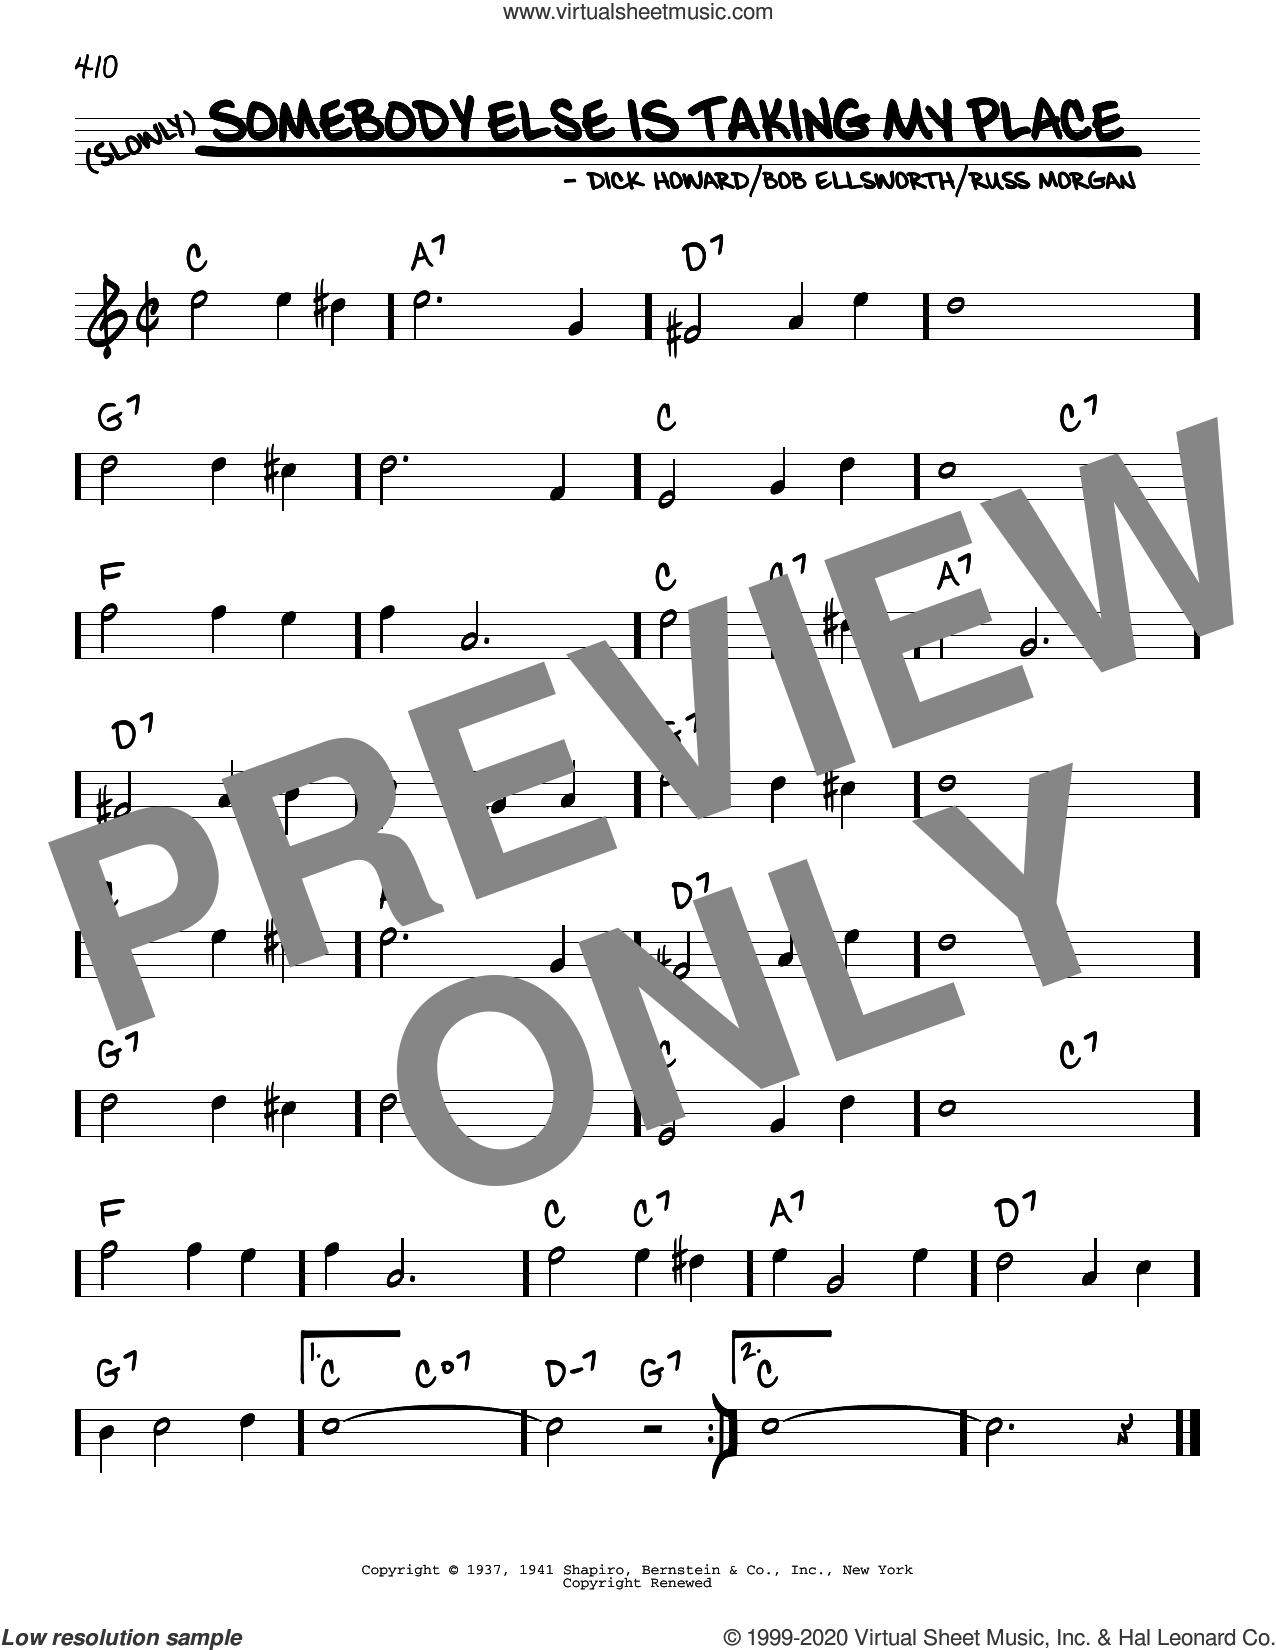 Somebody Else Is Taking My Place sheet music for voice and other instruments (real book) by Peggy Lee, Bob Ellsworth, Dick Howard and Russ Morgan, intermediate skill level